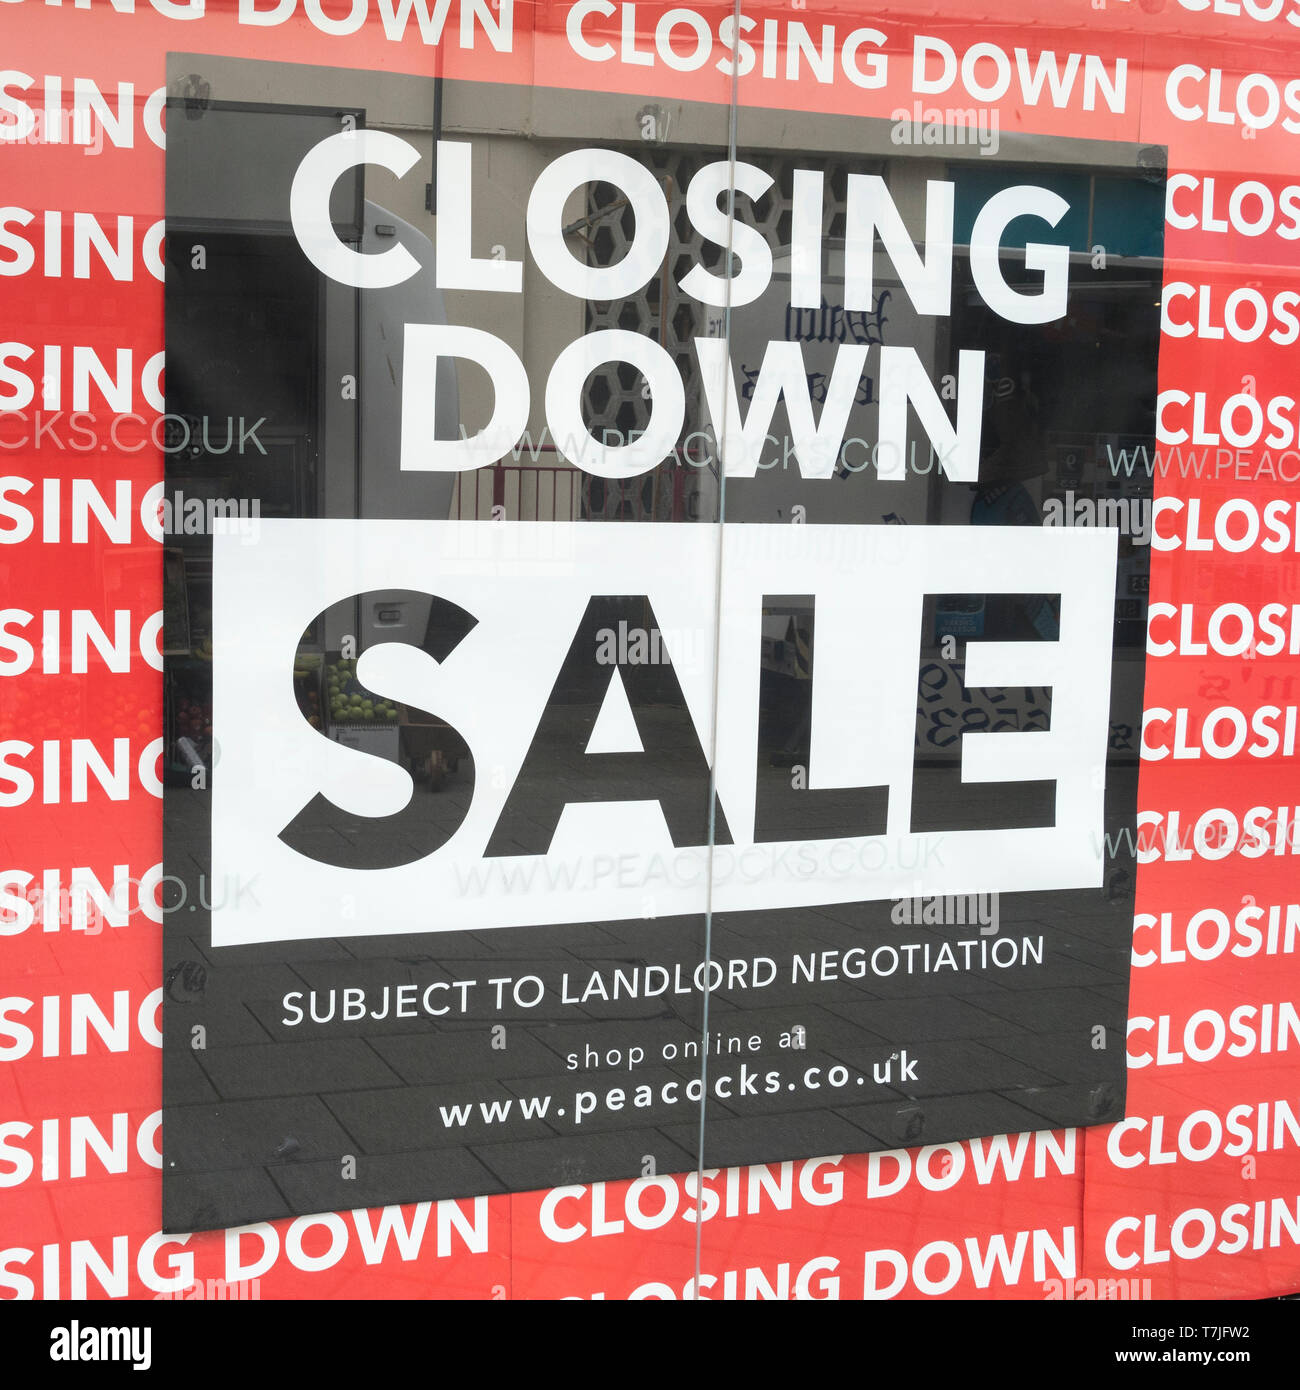 St Austell Peacocks shop Closing Down sign - metaphor economic slow-down, falling sales, retail and high street casualties, death of high street. - Stock Image